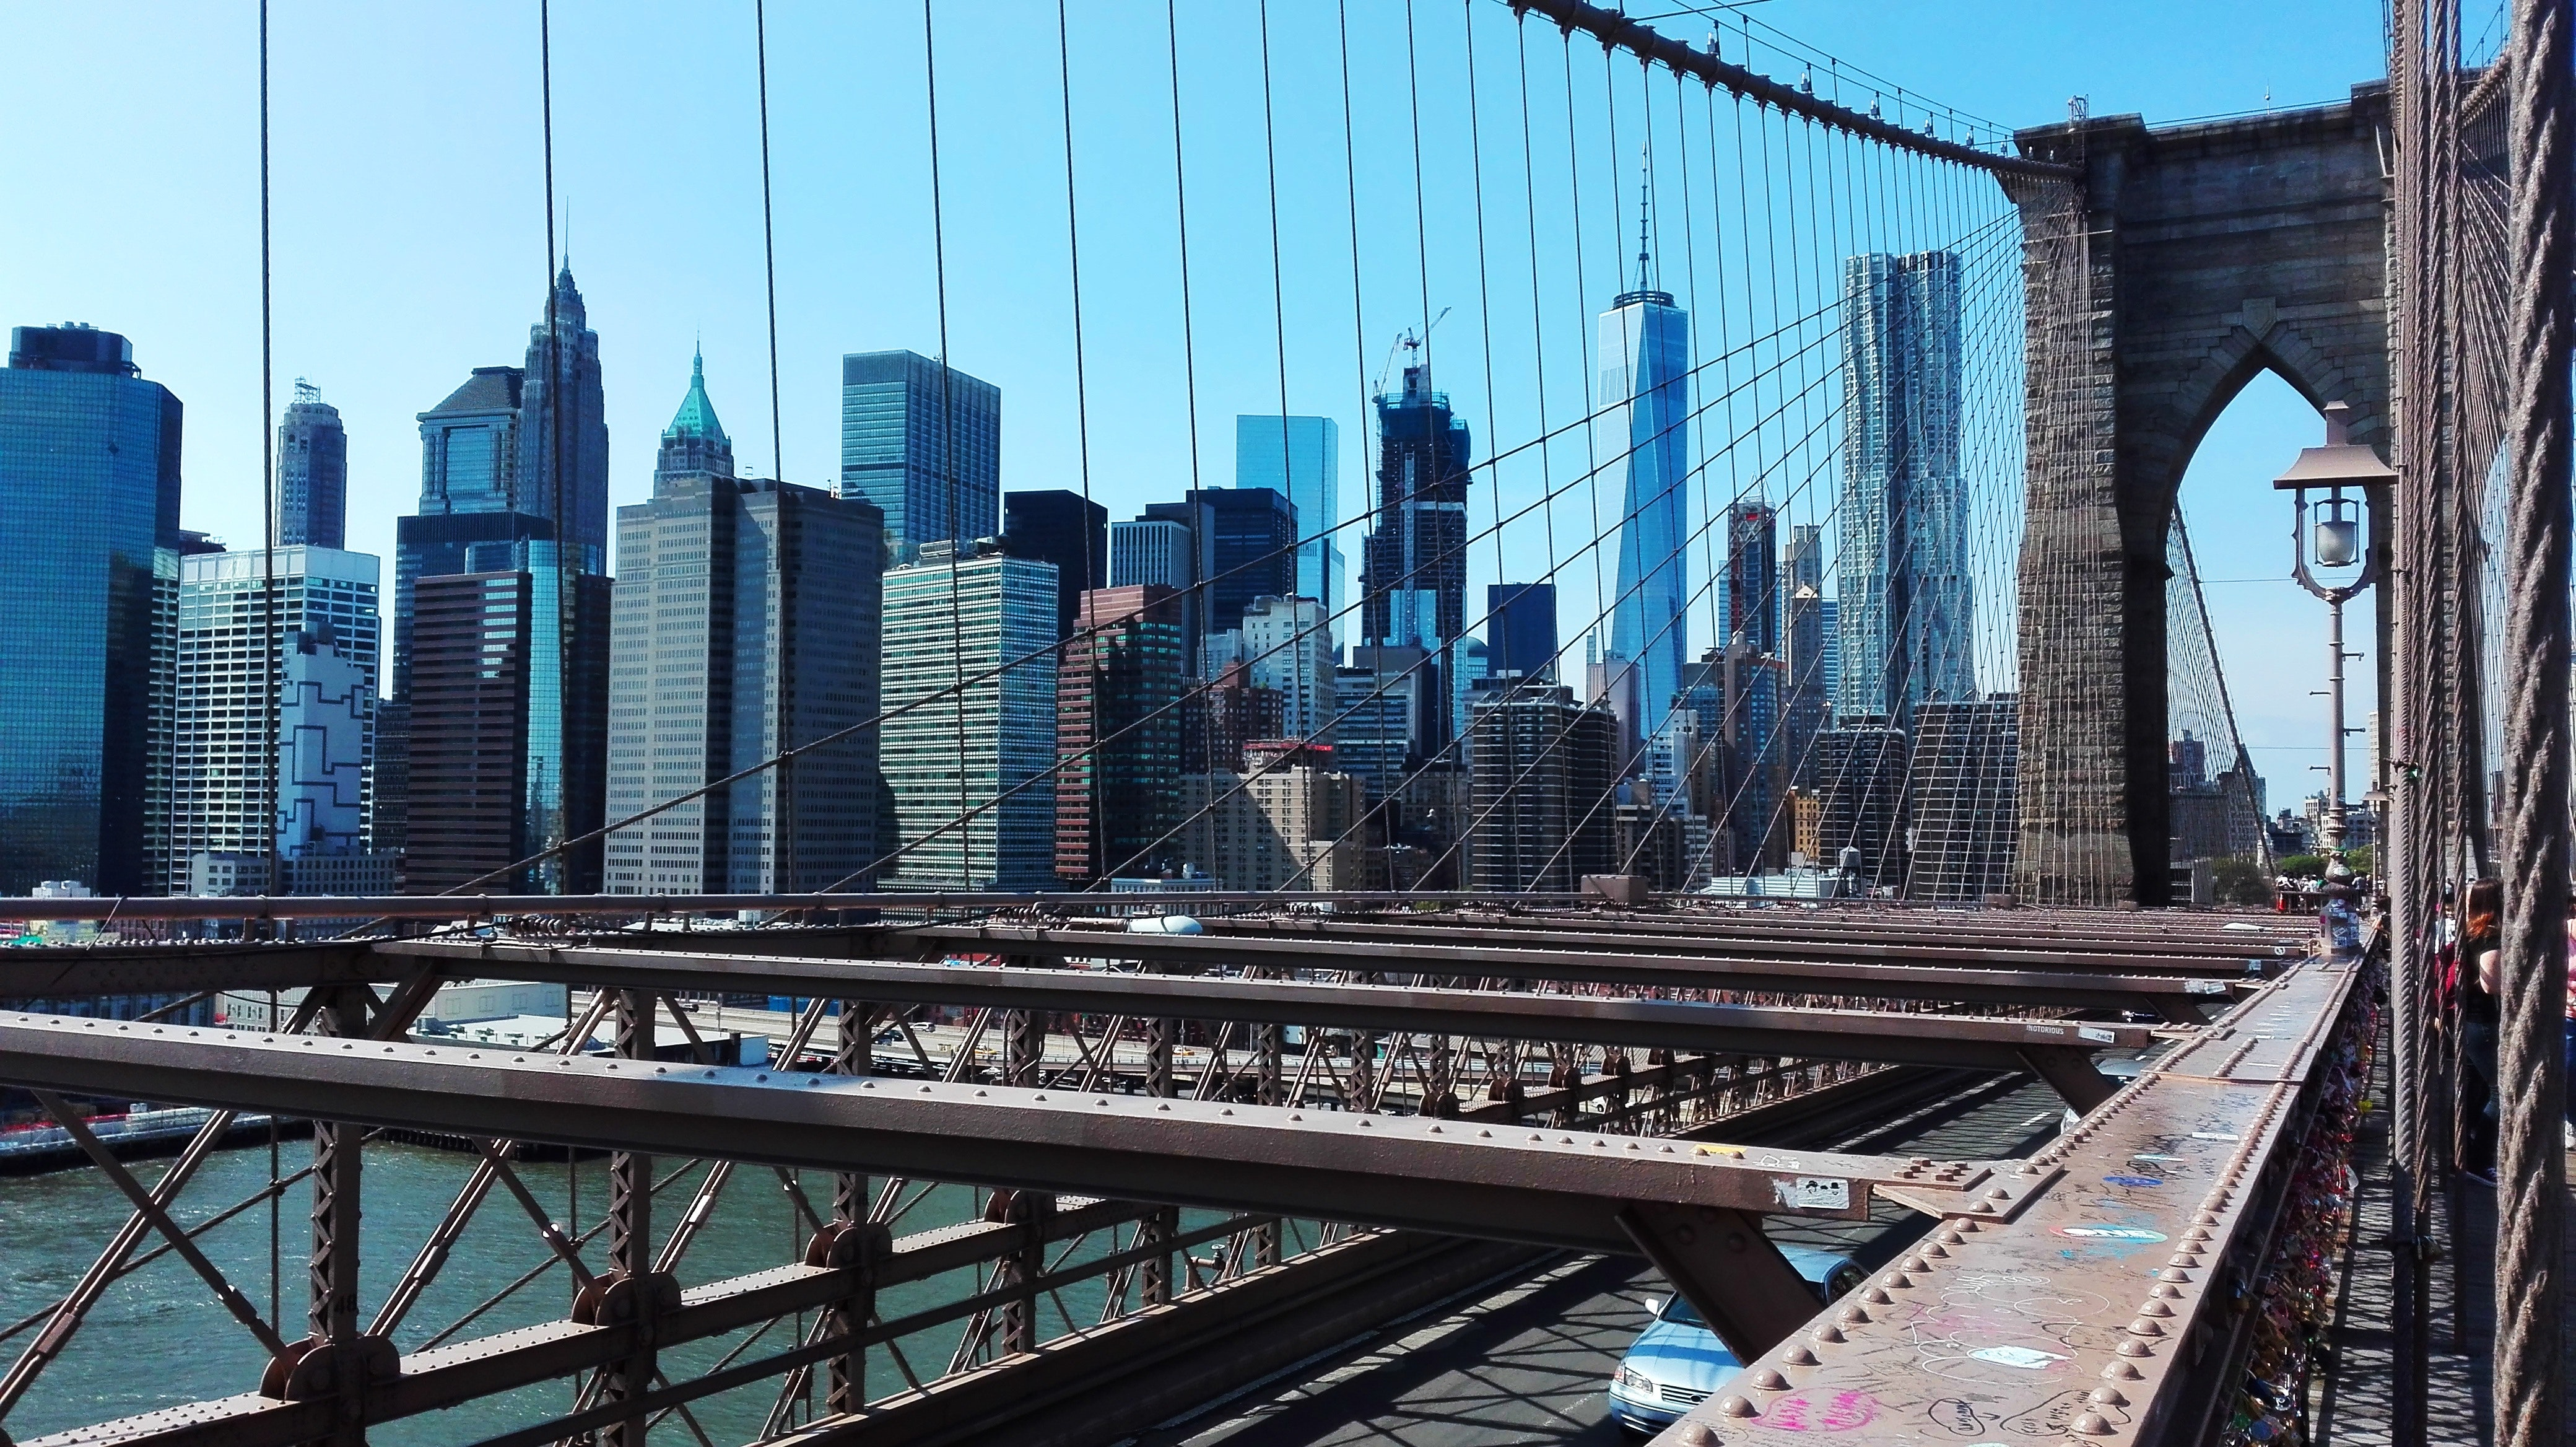 architecture-bridge-brooklyn-bridge-416053